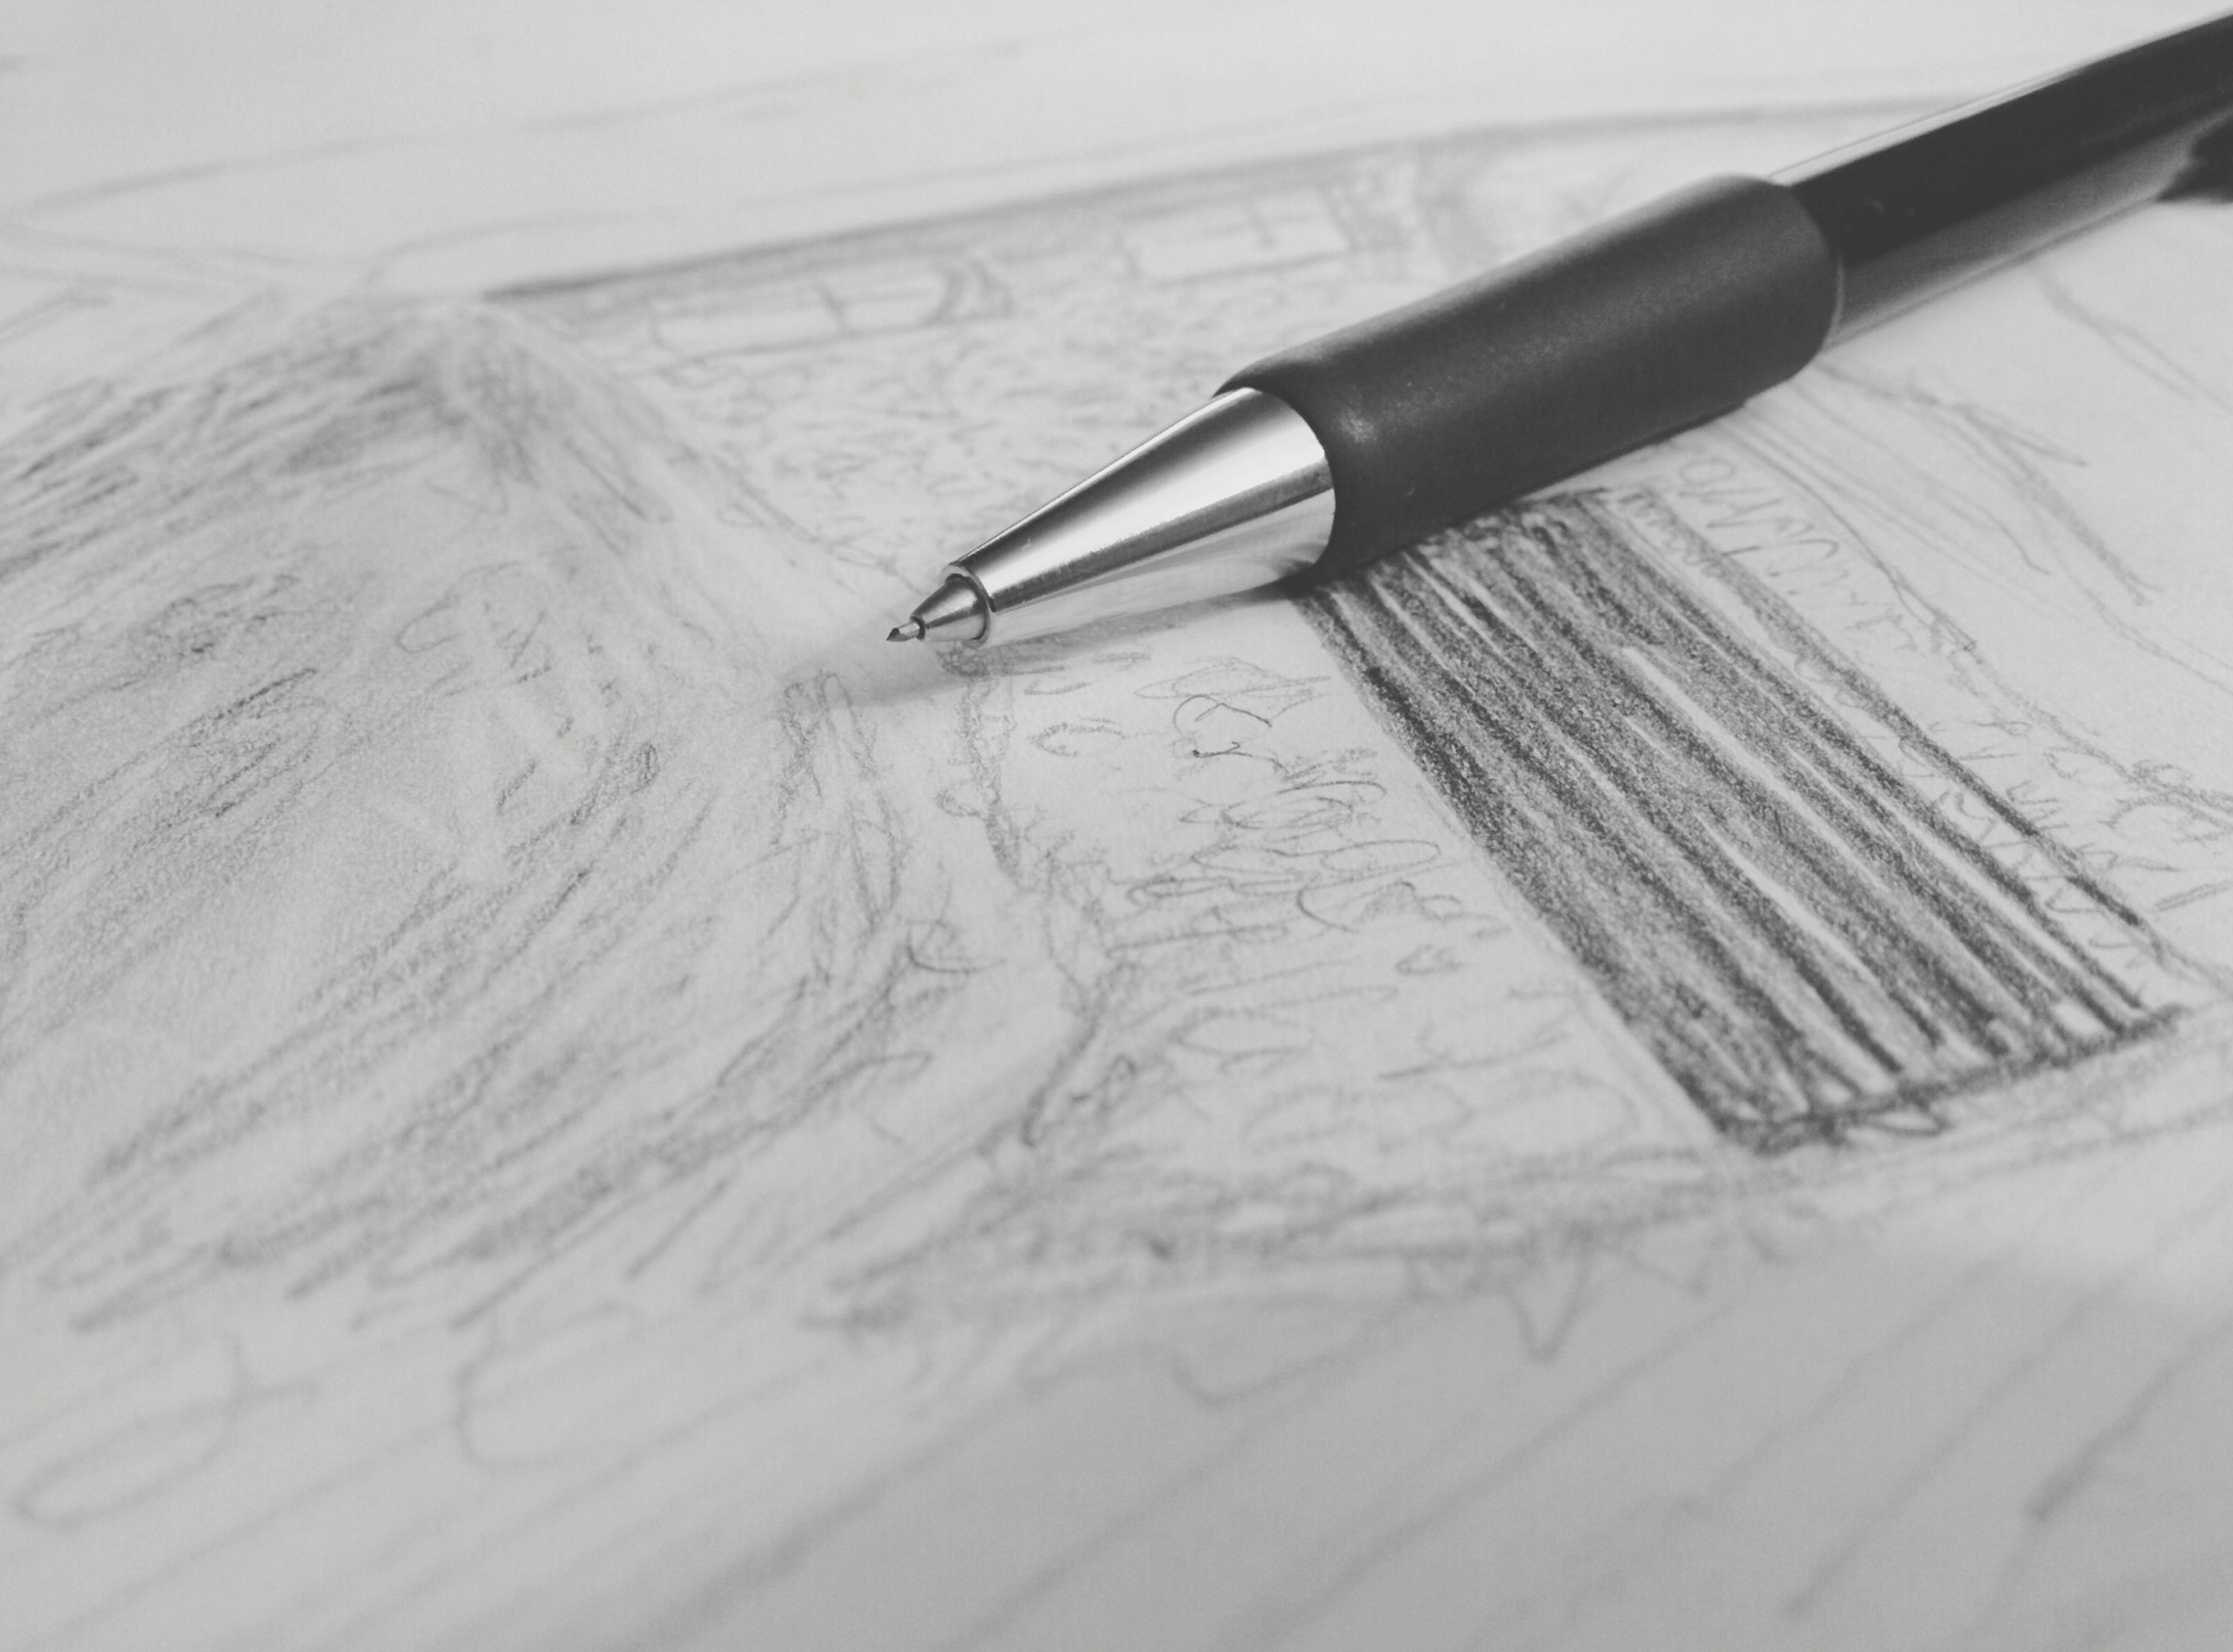 indoors, still life, table, high angle view, close-up, part of, cropped, paper, airplane, book, transportation, mode of transport, pen, no people, single object, tilt, pencil, air vehicle, day, absence